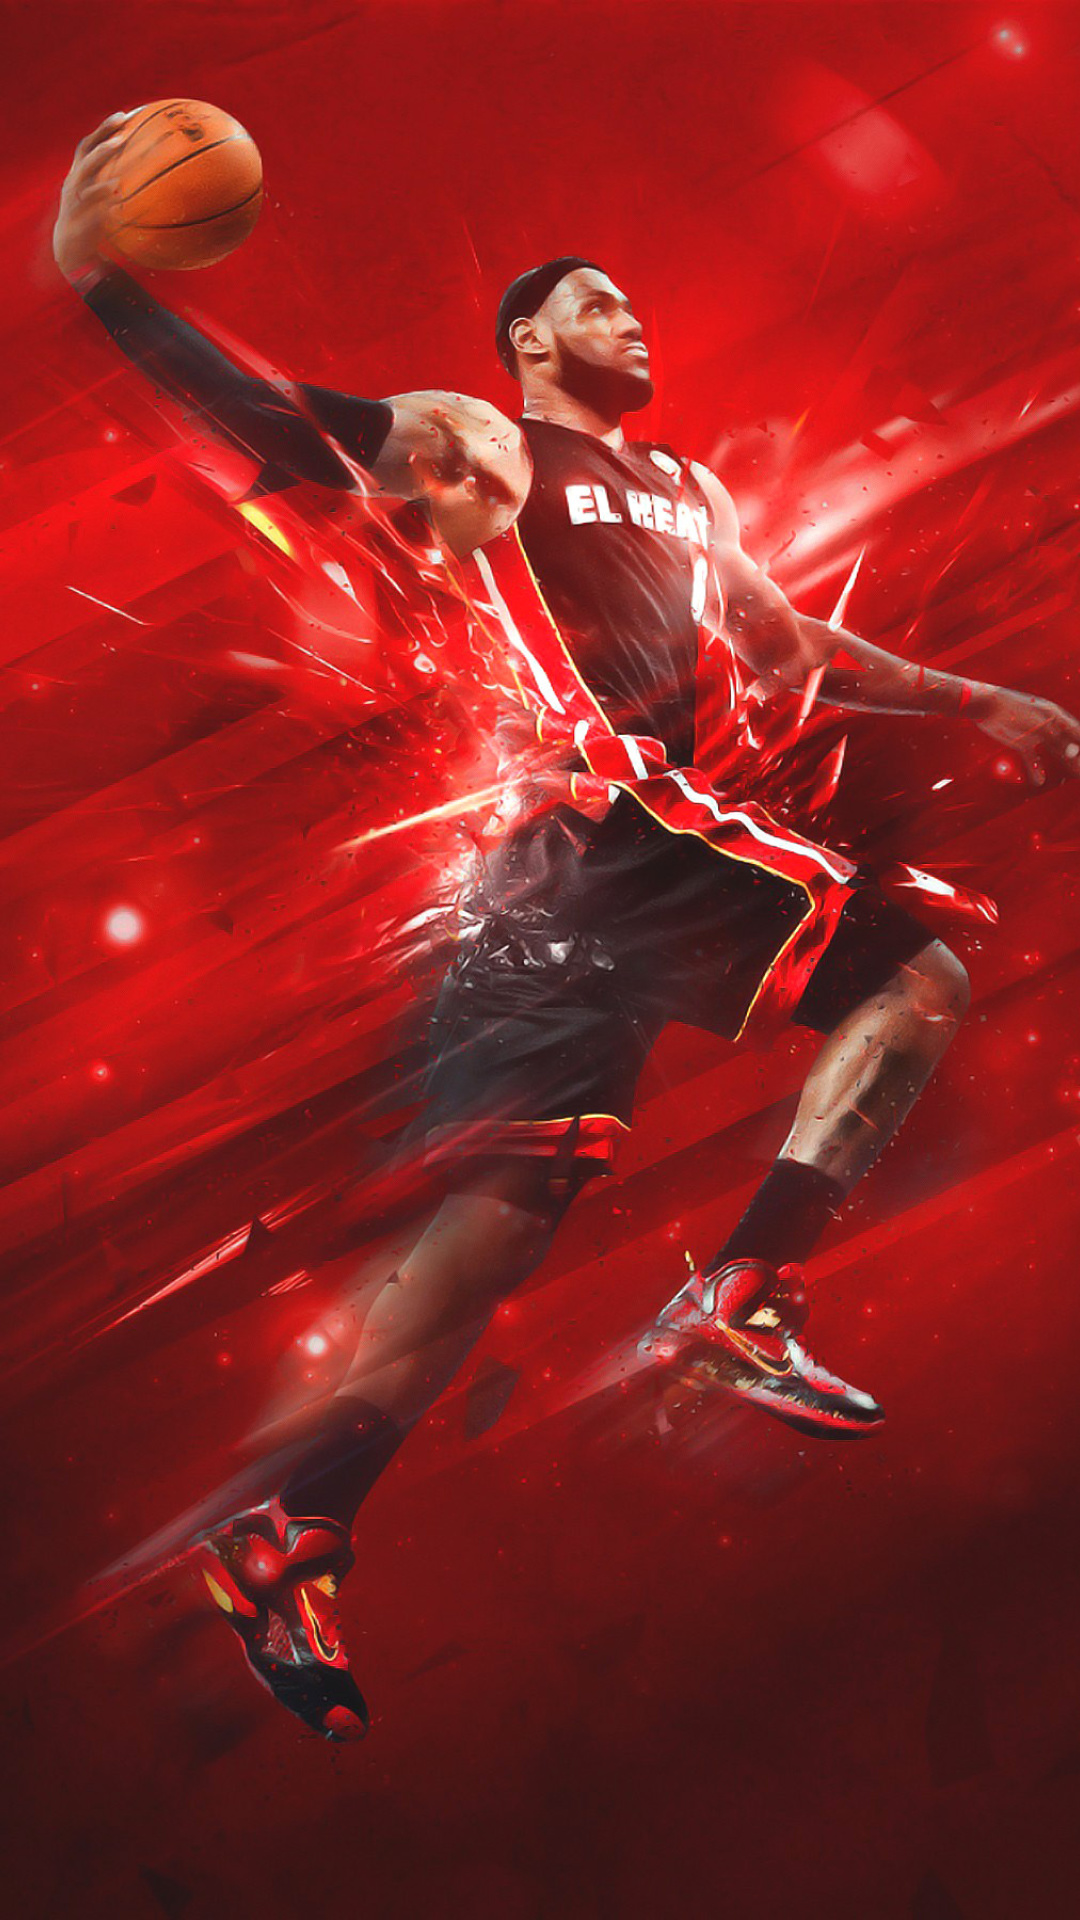 Stephen Curry Wallpaper Hd Download Lebron James Wallpaper Iphone Gallery